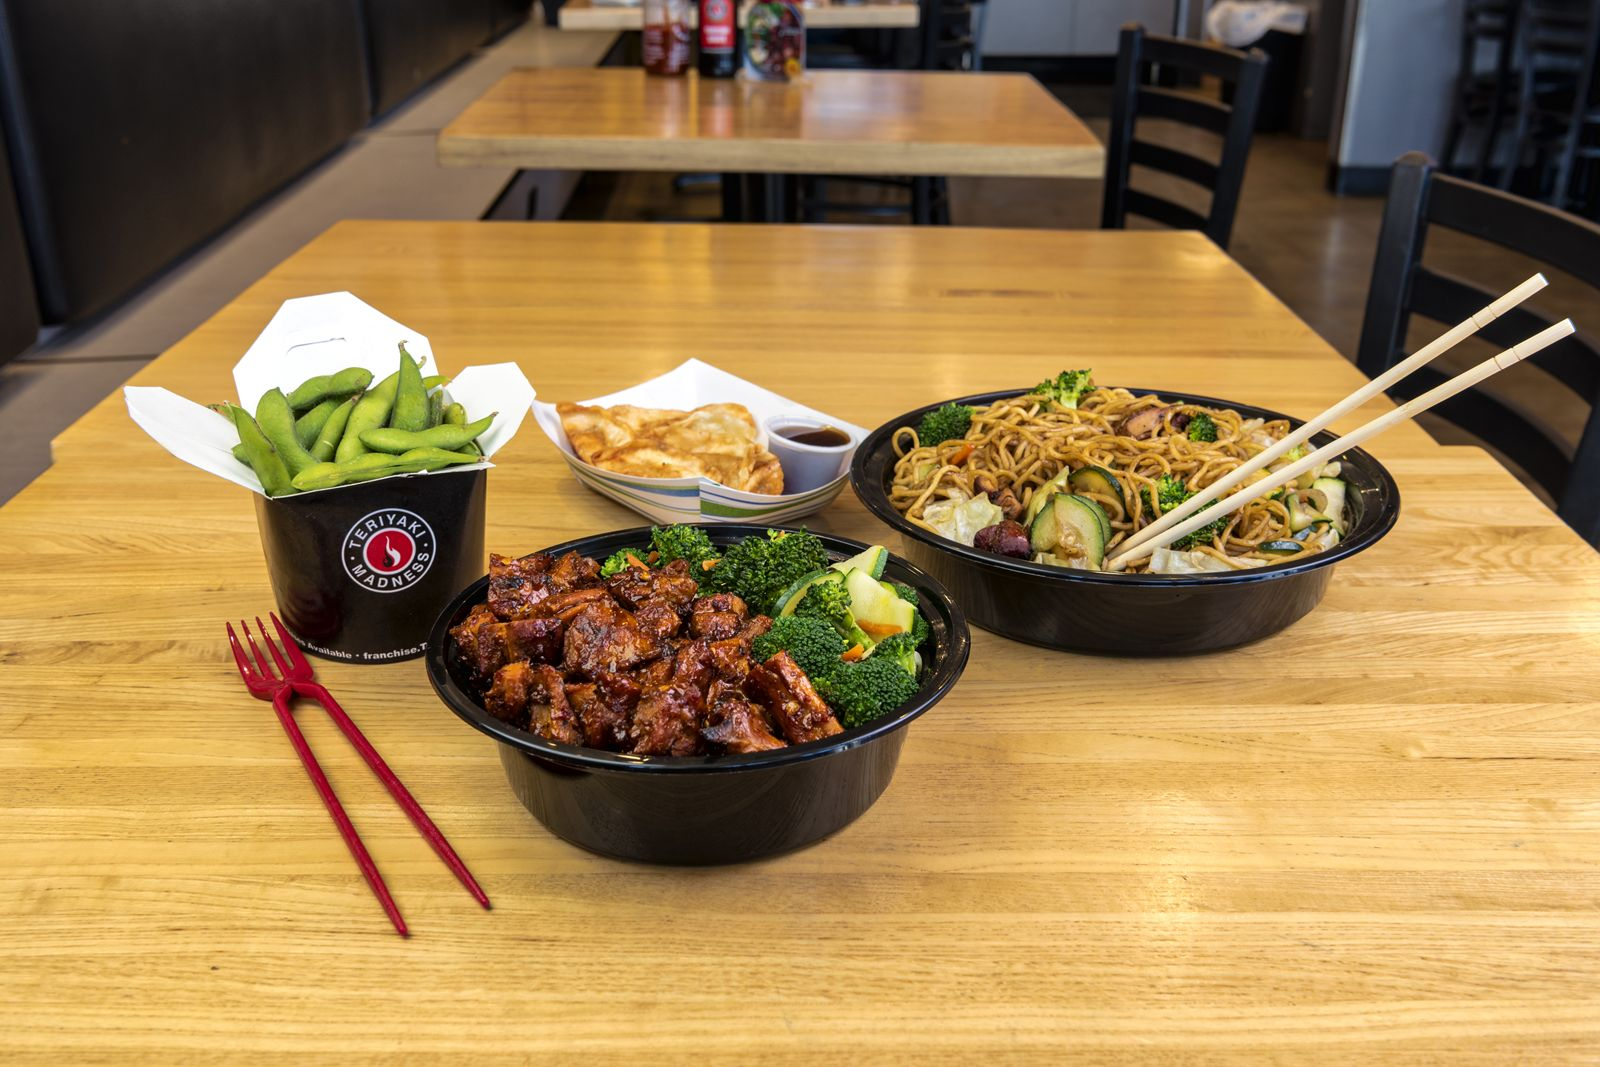 Teriyaki Madness Celebrates Transformative 2019 With The Opening of its New Corporate Shop in Downtown Denver on October 21